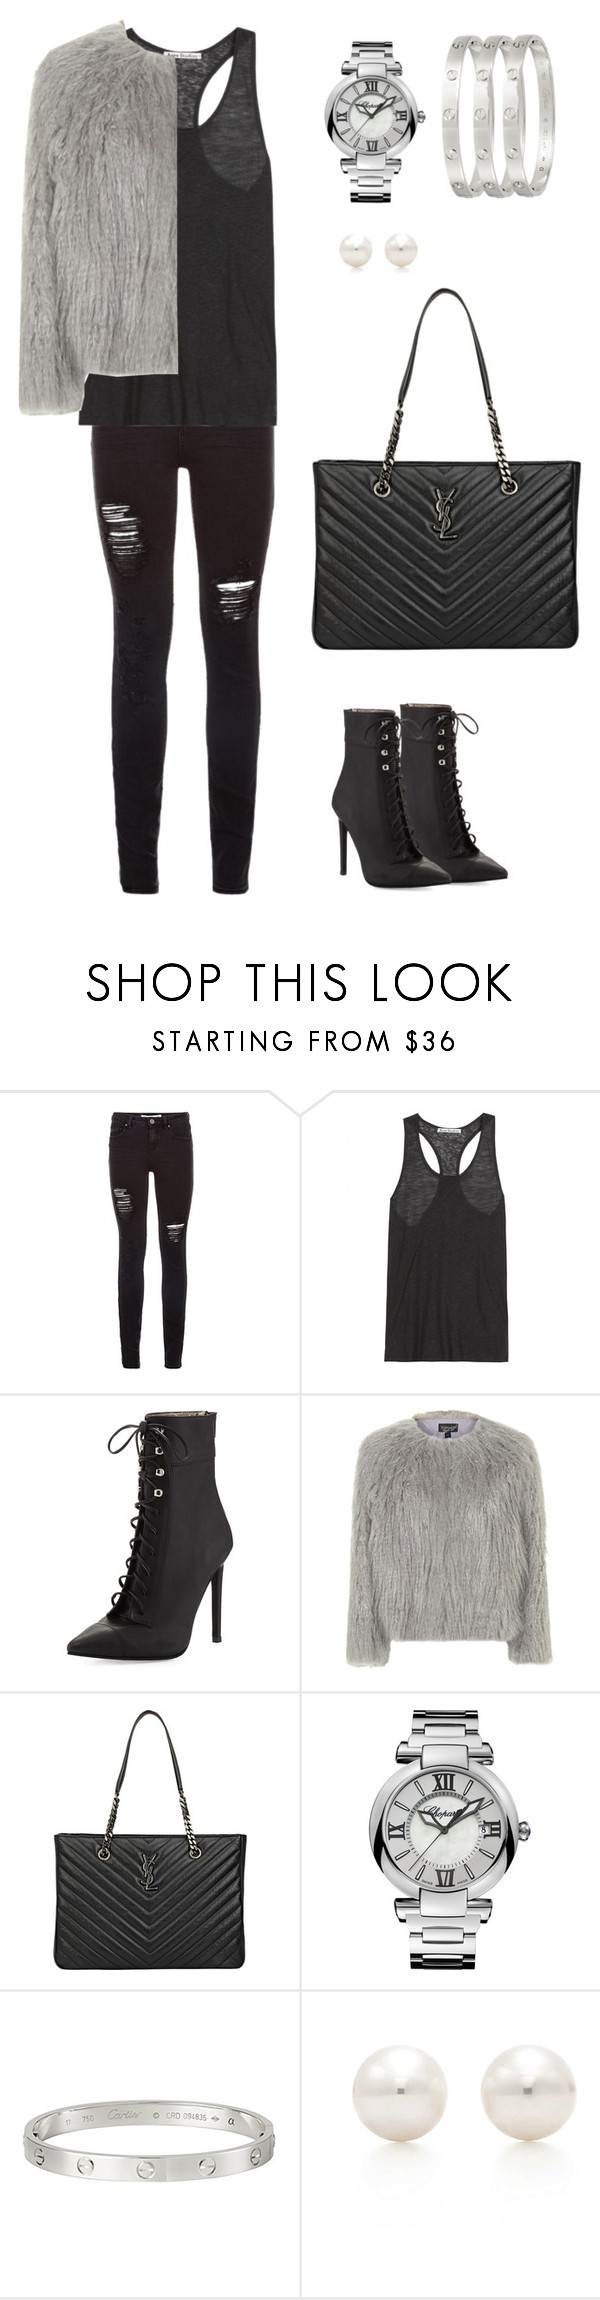 """Untitled"" by picasso2011 ❤ liked on Polyvore featuring Acne Studios, Jeffrey Campbell, Topshop, Yves Saint Laurent, Chopard, Cartier and Tiffany & Co."